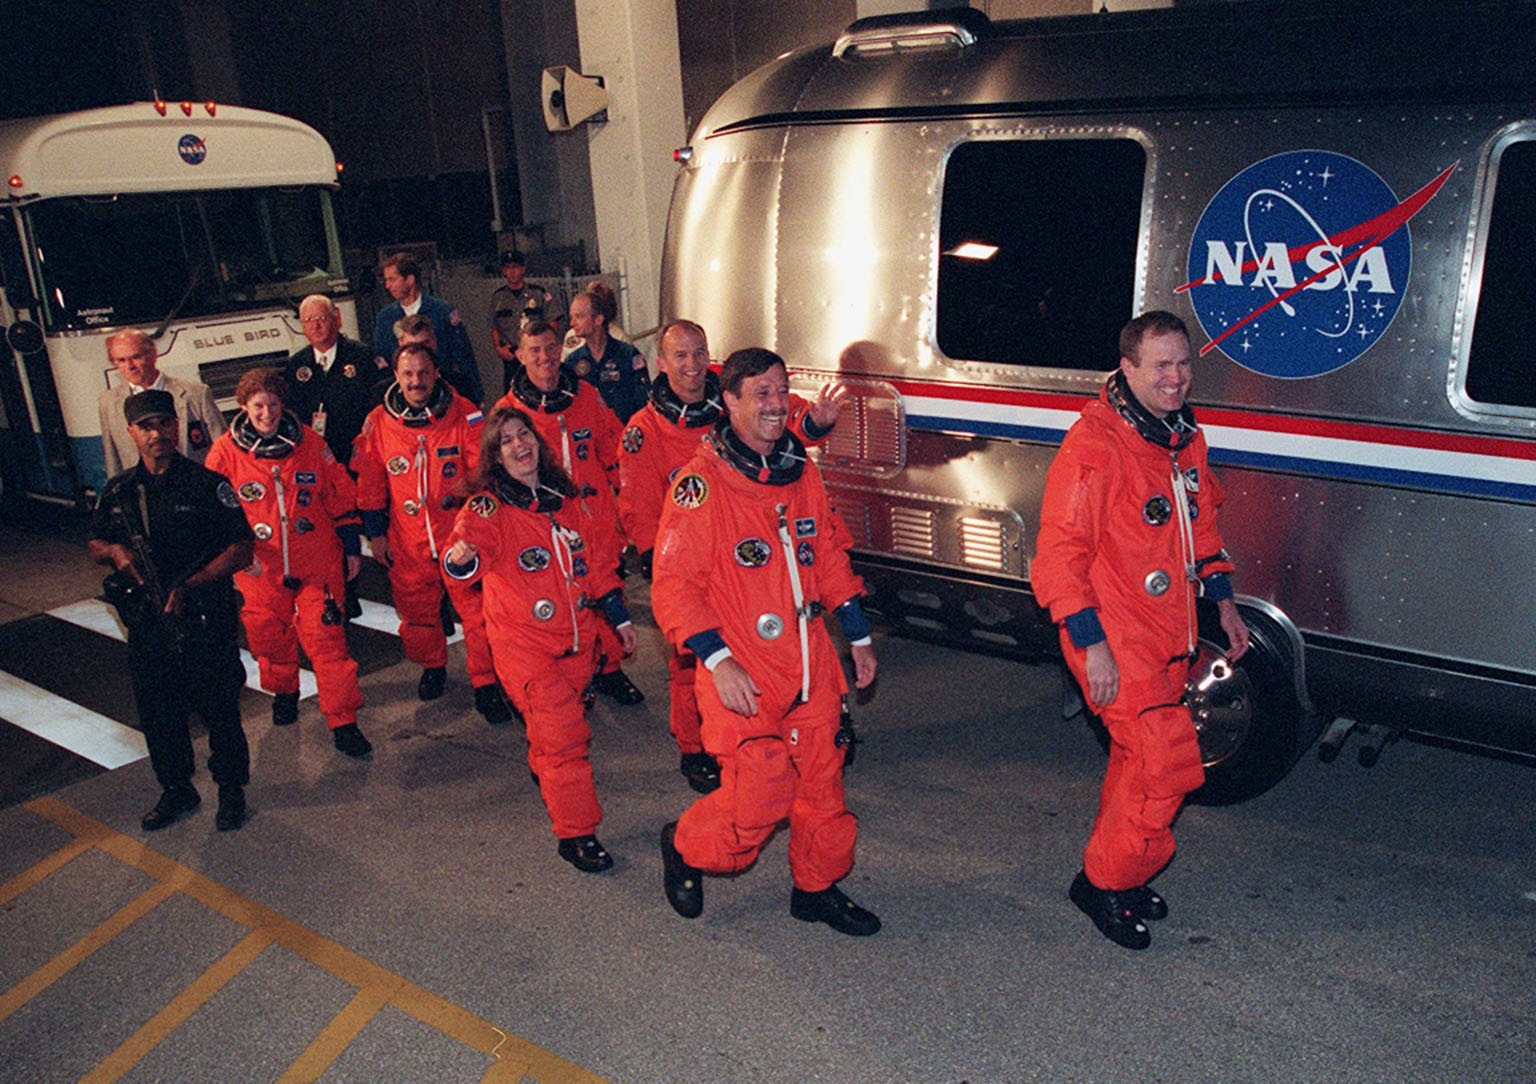 The STS-101 crew wave and smile at onlookers as they head to the Astrovan for the trip to Launch Pad 39A and the fourth attempt at launch of Space Shuttle Atlantis. In their orange launch and entry suits, they are (left to right) Mission Specialists Susan J. Helms, Yury Usachev of Russia, James S. Voss, Mary Ellen Weber, Jeffrey N. Williams; Pilot Scott ?Doc? Horowitz; and Commander James D. Halsell Jr. The mission will take the crew to the International Space Station to deliver logistics and supplies and to prepare the Station for the arrival of the Zvezda Service Module, expected to be launched by Russia in July 2000. Also, the crew will conduct one space walk and will reboost the space station from 230 statute miles to 250 statute miles. This will be the third assembly flight to the Space Station. Liftoff of Space Shuttle Atlantis for the 10-day mission is scheduled for about 6:11 a.m. EDT from Launch Pad 39A. Landing is targeted for May 29 at 2:19 a.m. EDT